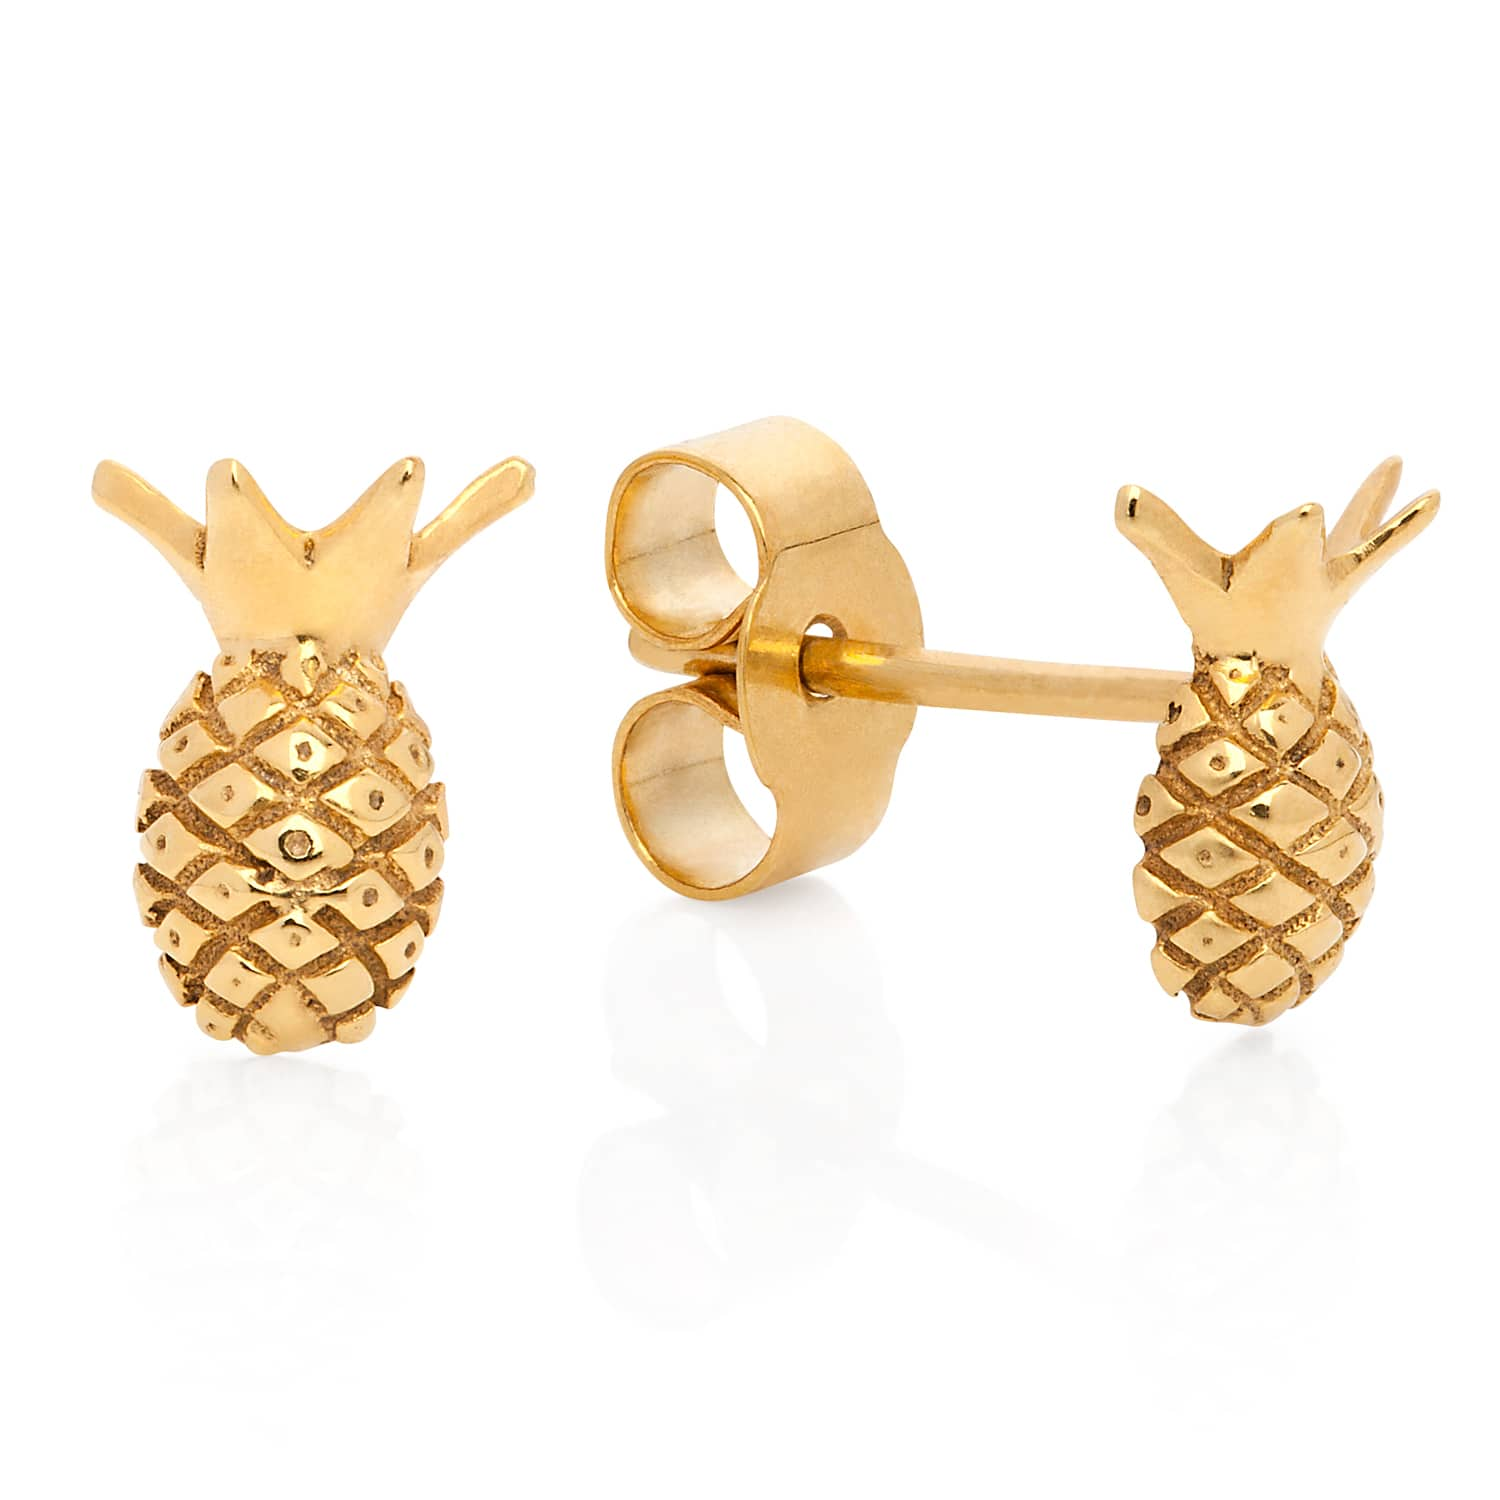 pinapple gold earrings bubbles gift ears shoppe products pineapple stud